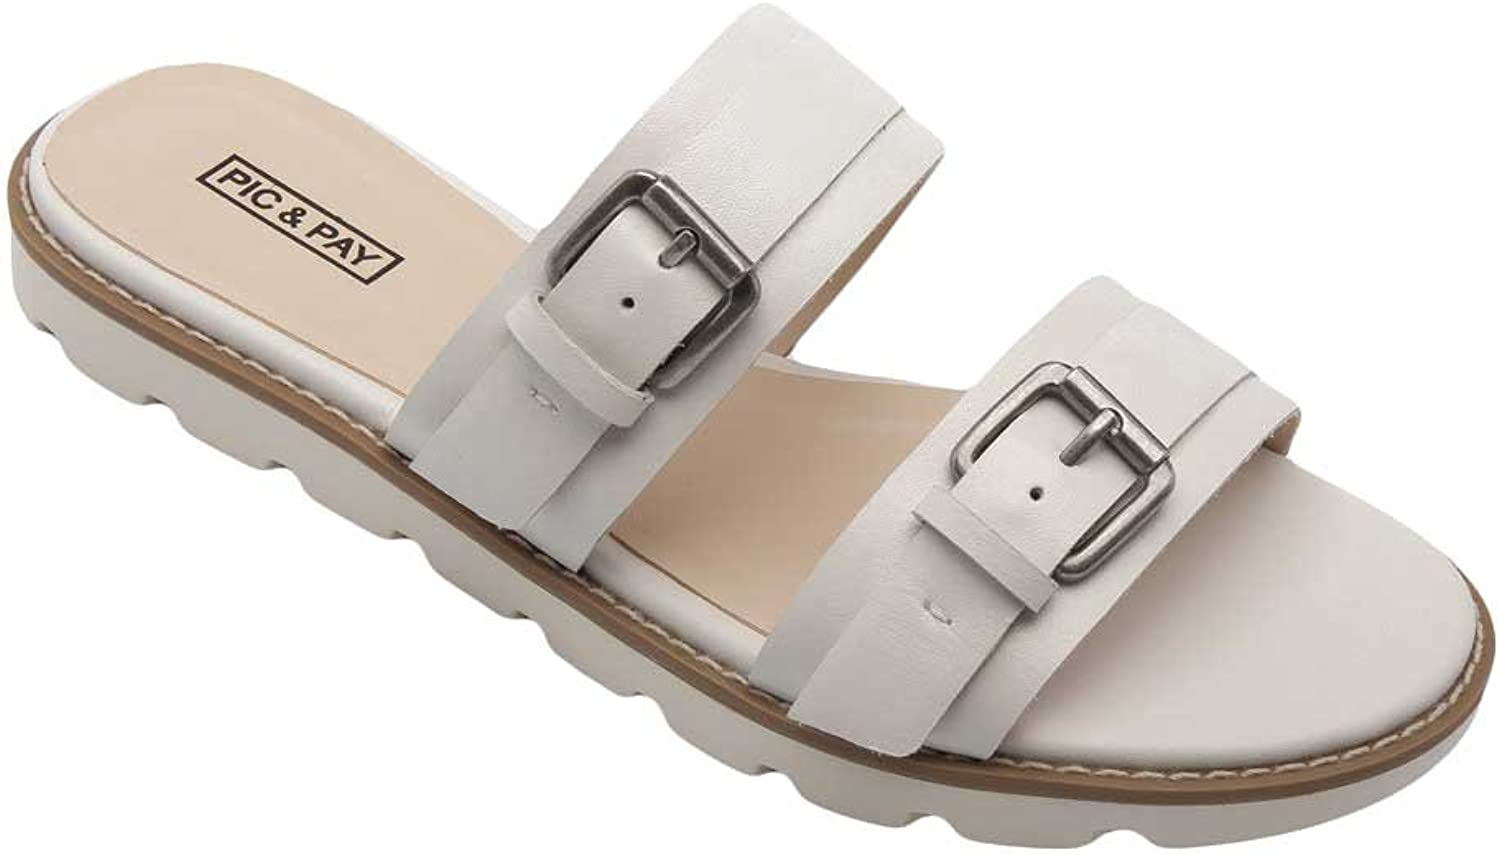 Pic Pay Cairo Women's Sandals - Leather Dual Strap Flat Sandal White Leather 7M